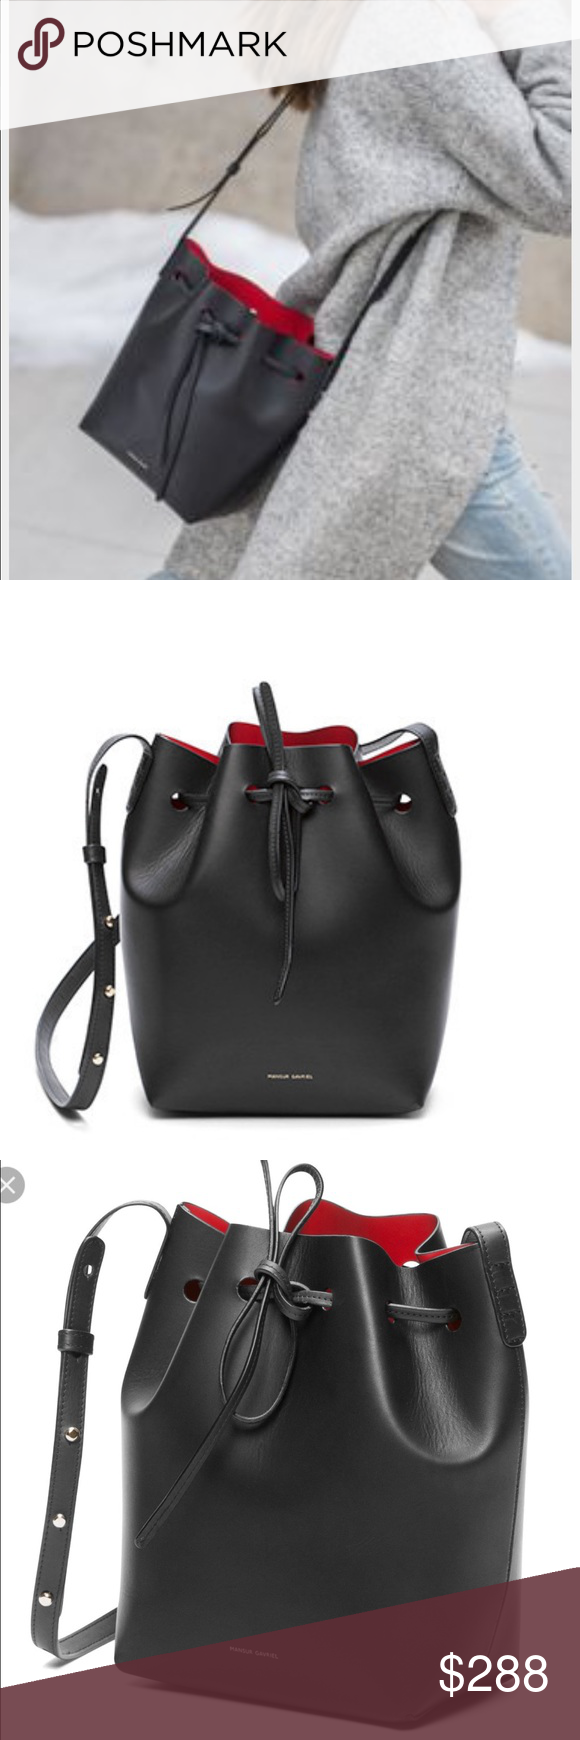 Mansur Gavriel Mini Bucket Bag Black with Flamma Mansur Gavriel mini bucket bag. Always out of stock everywhere. Black leather with Flamma(red) interior. Bought from Barney's. with original dust bag. Normal wear, there is a light scratch on the back. See pics for detail. Mansur Gavriel Bags Satchels